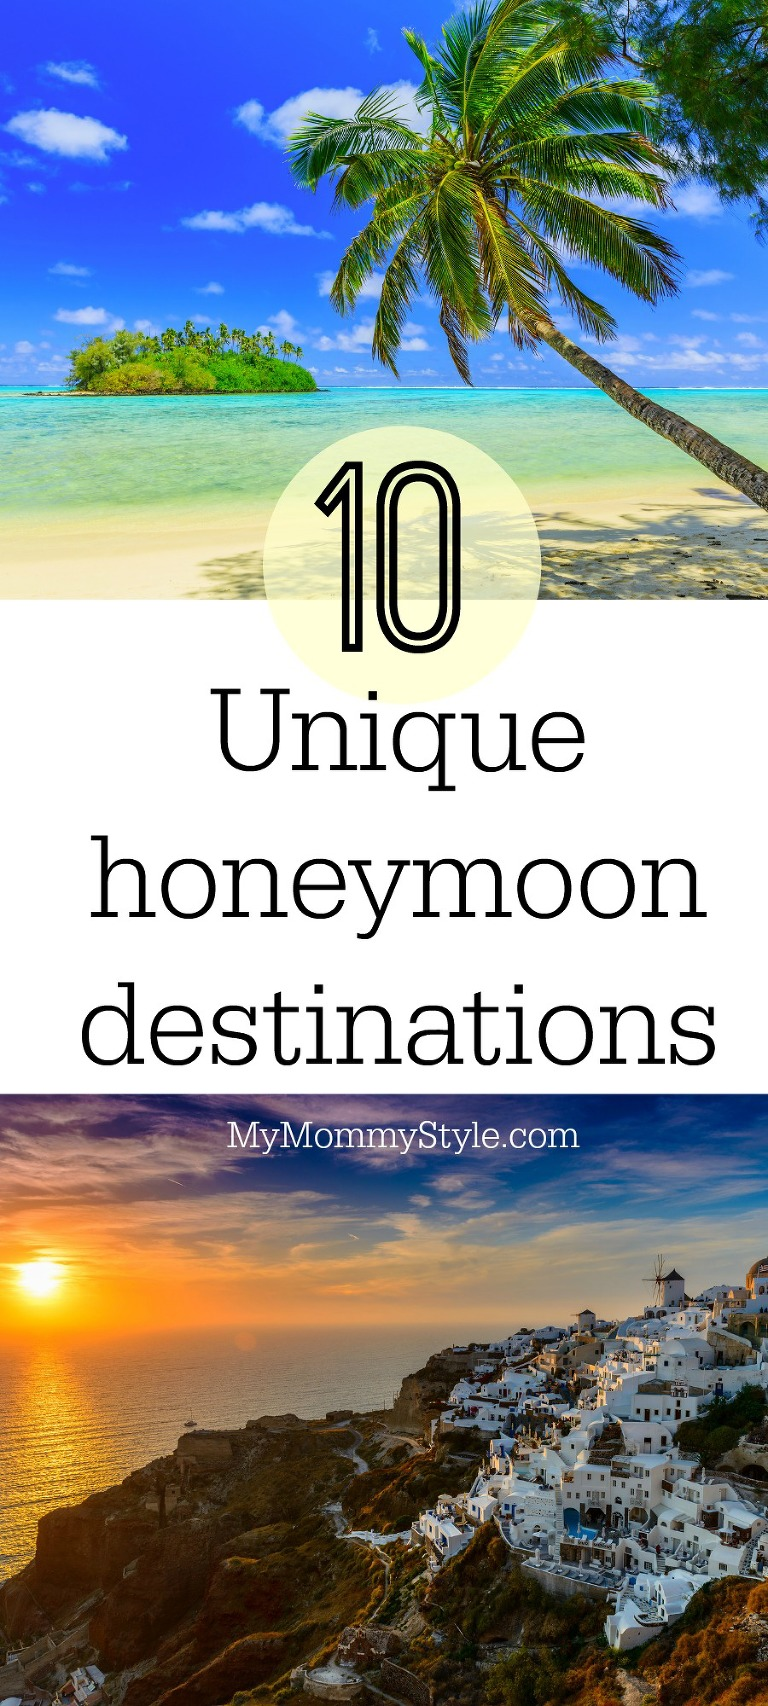 10 unique honeymoon destinations